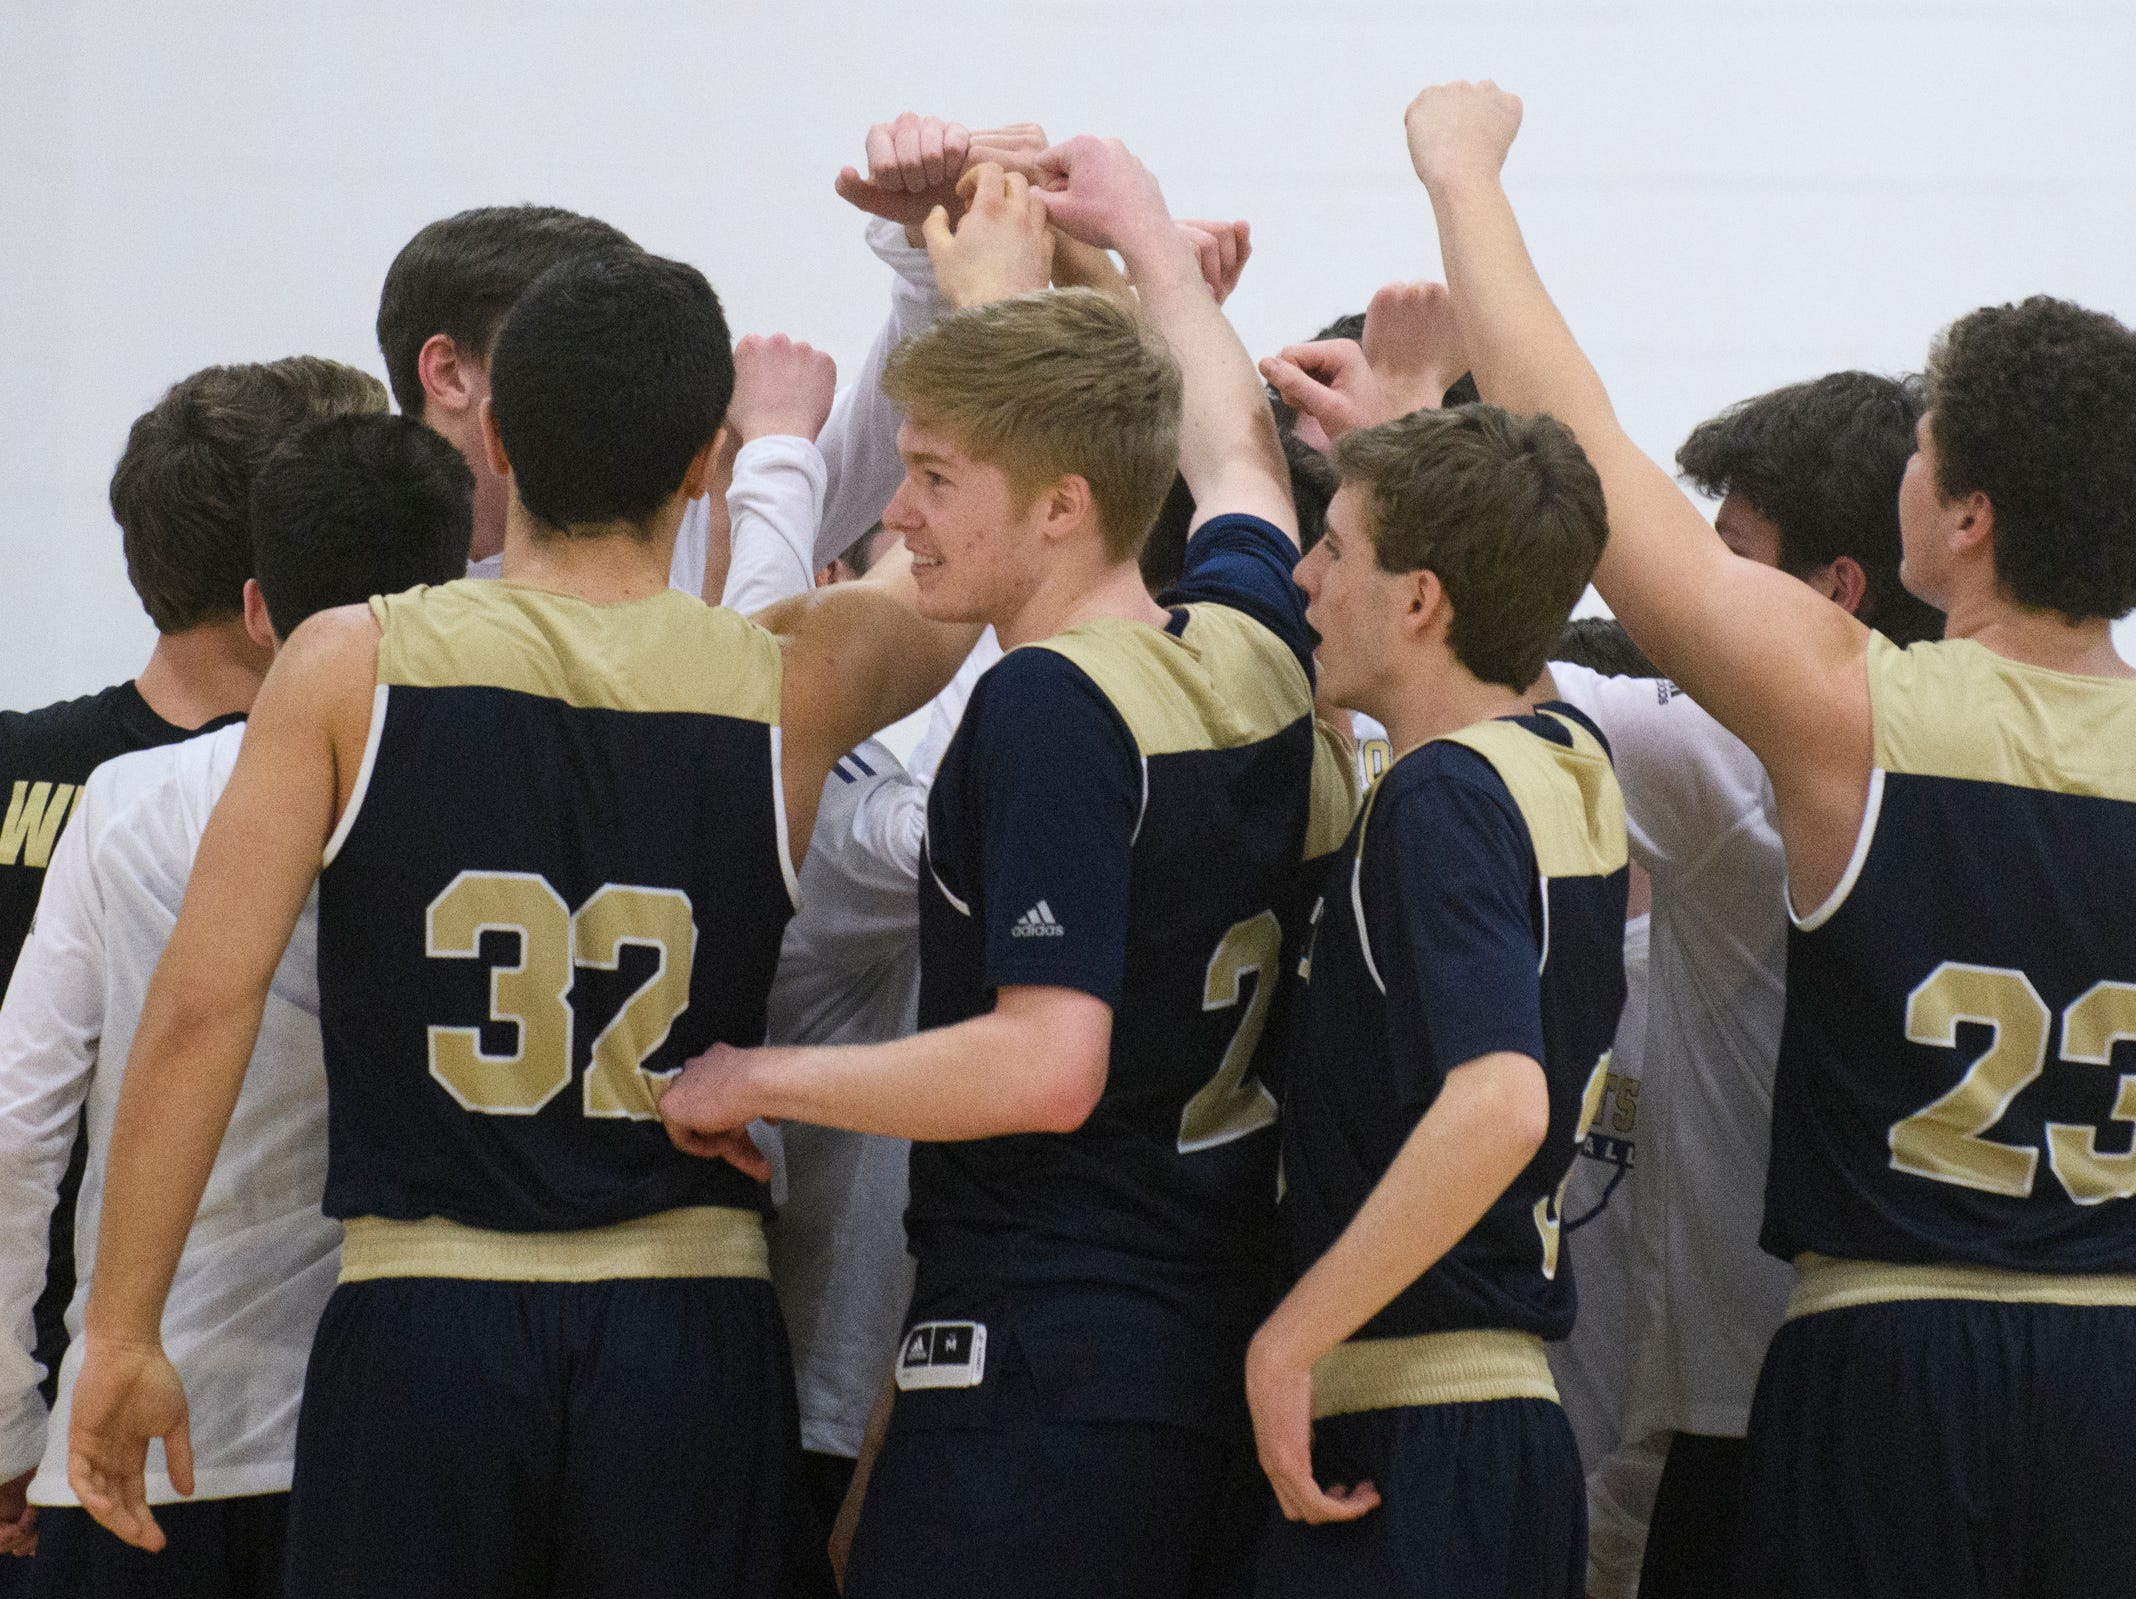 Essex huddles together during the boys basketball game between the Essex Hornets and the Mount Mansfield Cougars at MMU High School on Wednesday night February 13, 2019 in Jericho, Vermont.